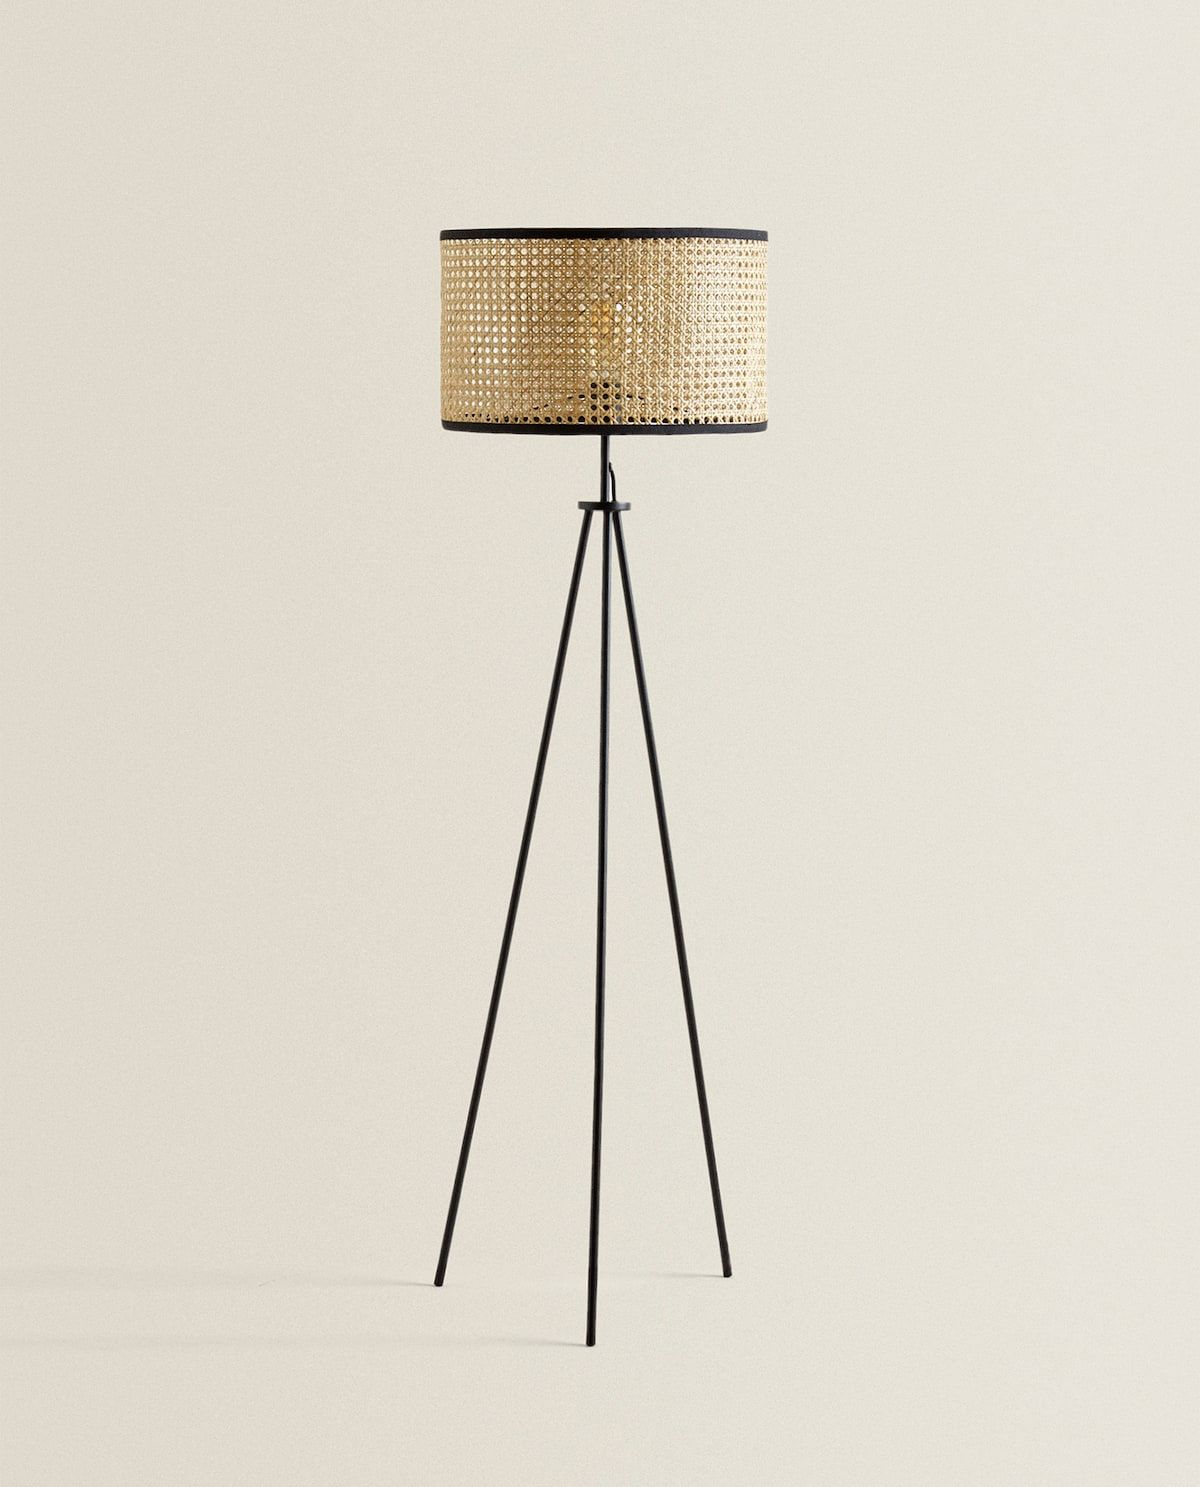 Image 1 Of The Product Rattan Floor Lamp Rattan Floor Lamp